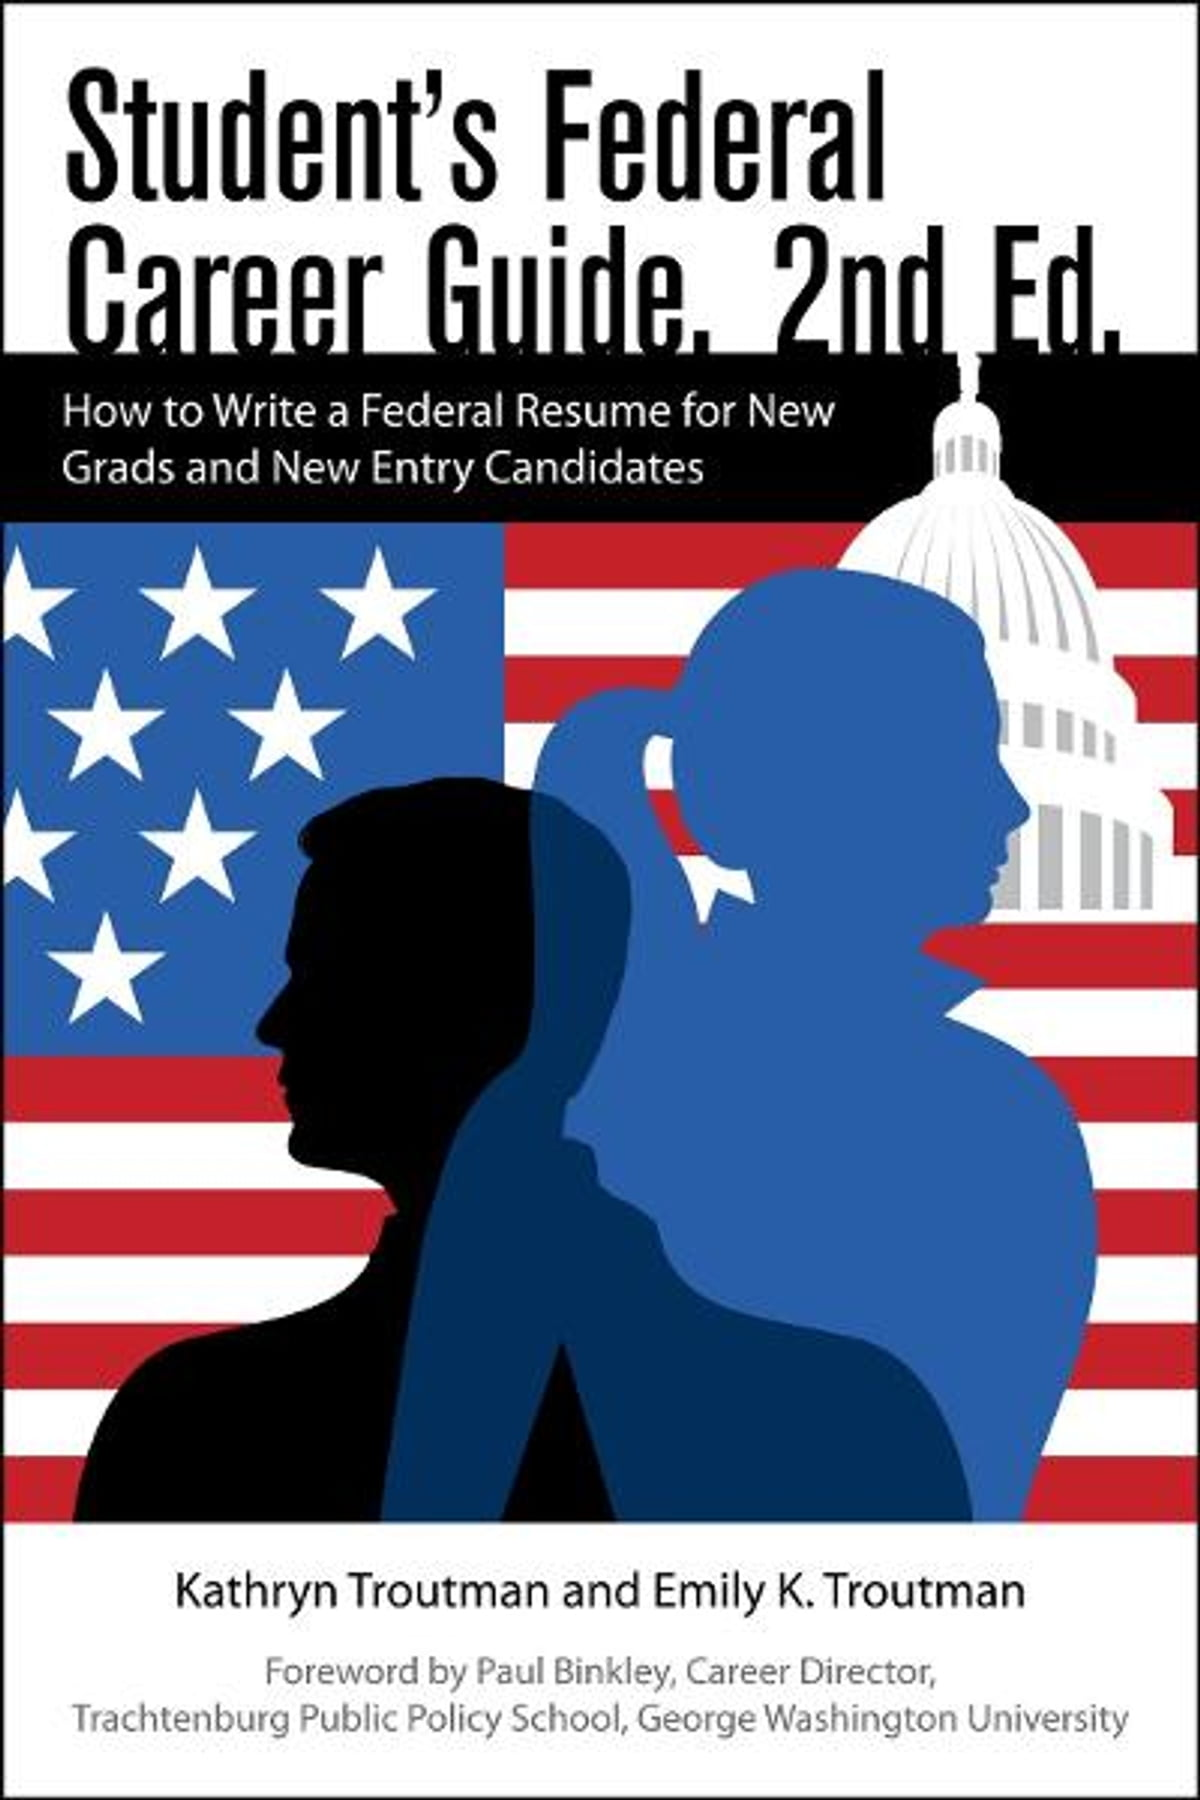 Students Federal Career Guide 2nd Ed Ebook De Kathryn Troutman